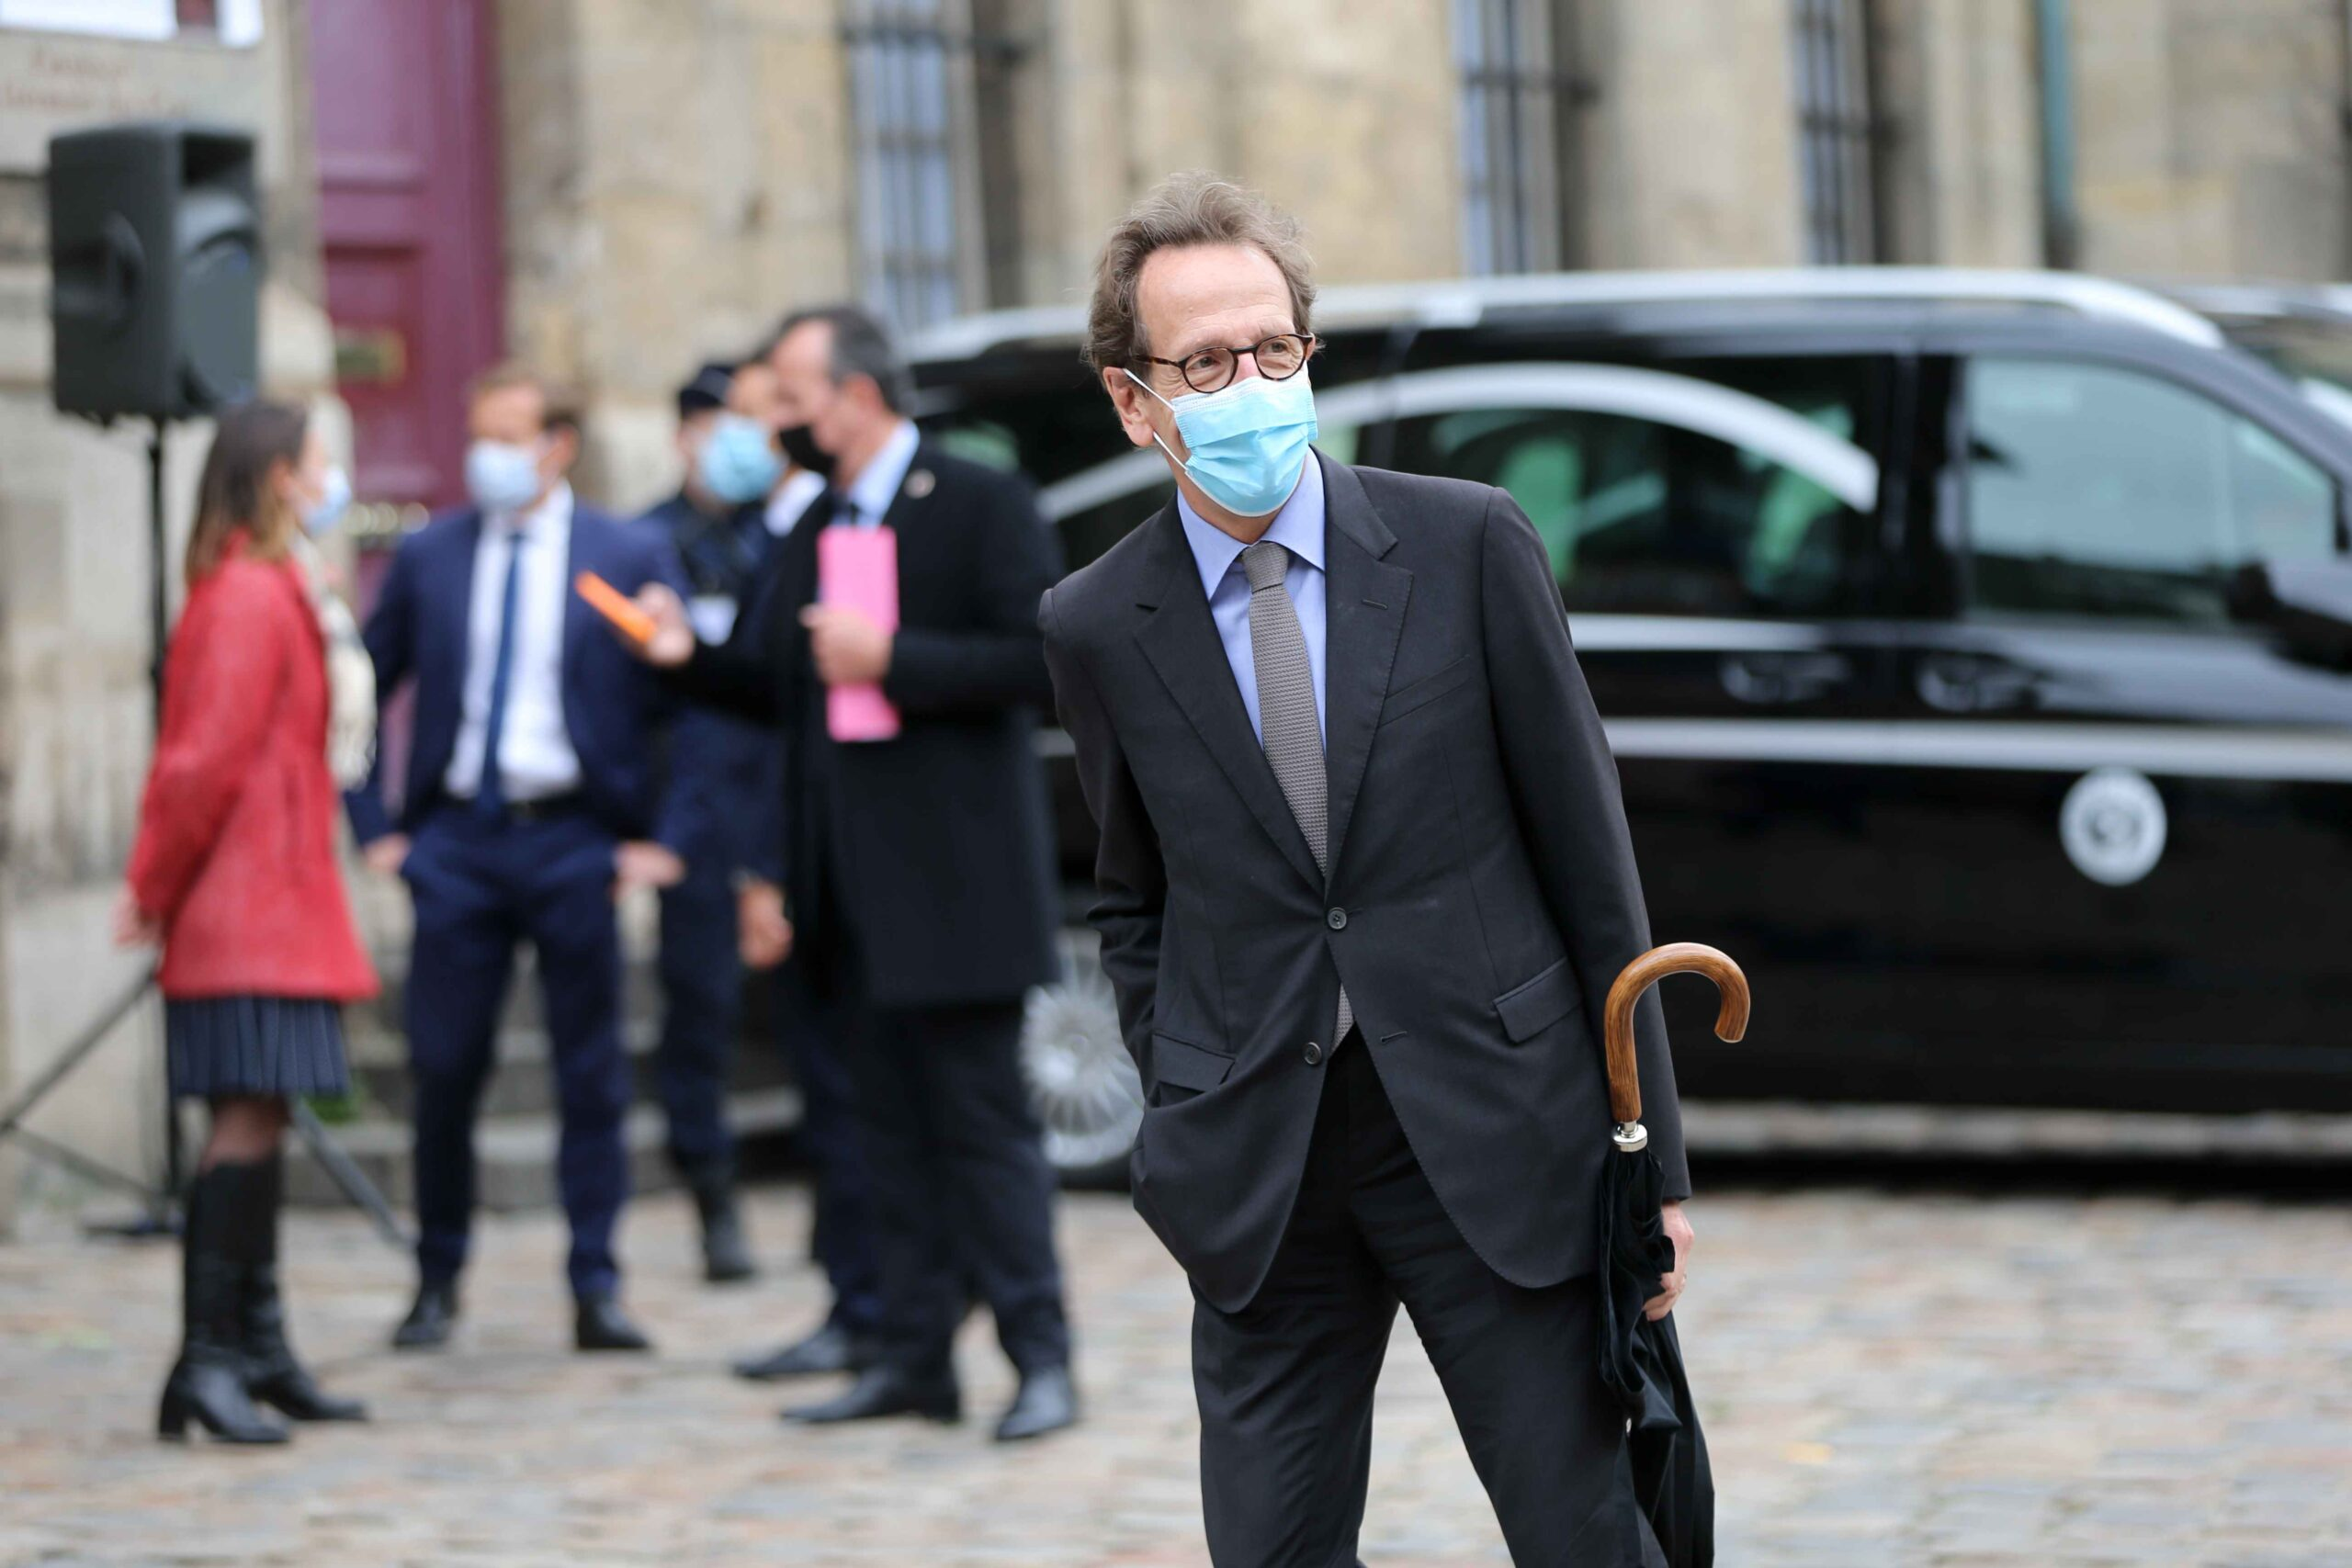 Gilles Le Gendre, former head of French centre-right ruling party La Republique en Marche (LREM) arrives for the funerals of French singer Juliette Greco, at the Saint-Germain-des-Pres church in Paris, on October 5, 2020. Legendary French singer Juliette G